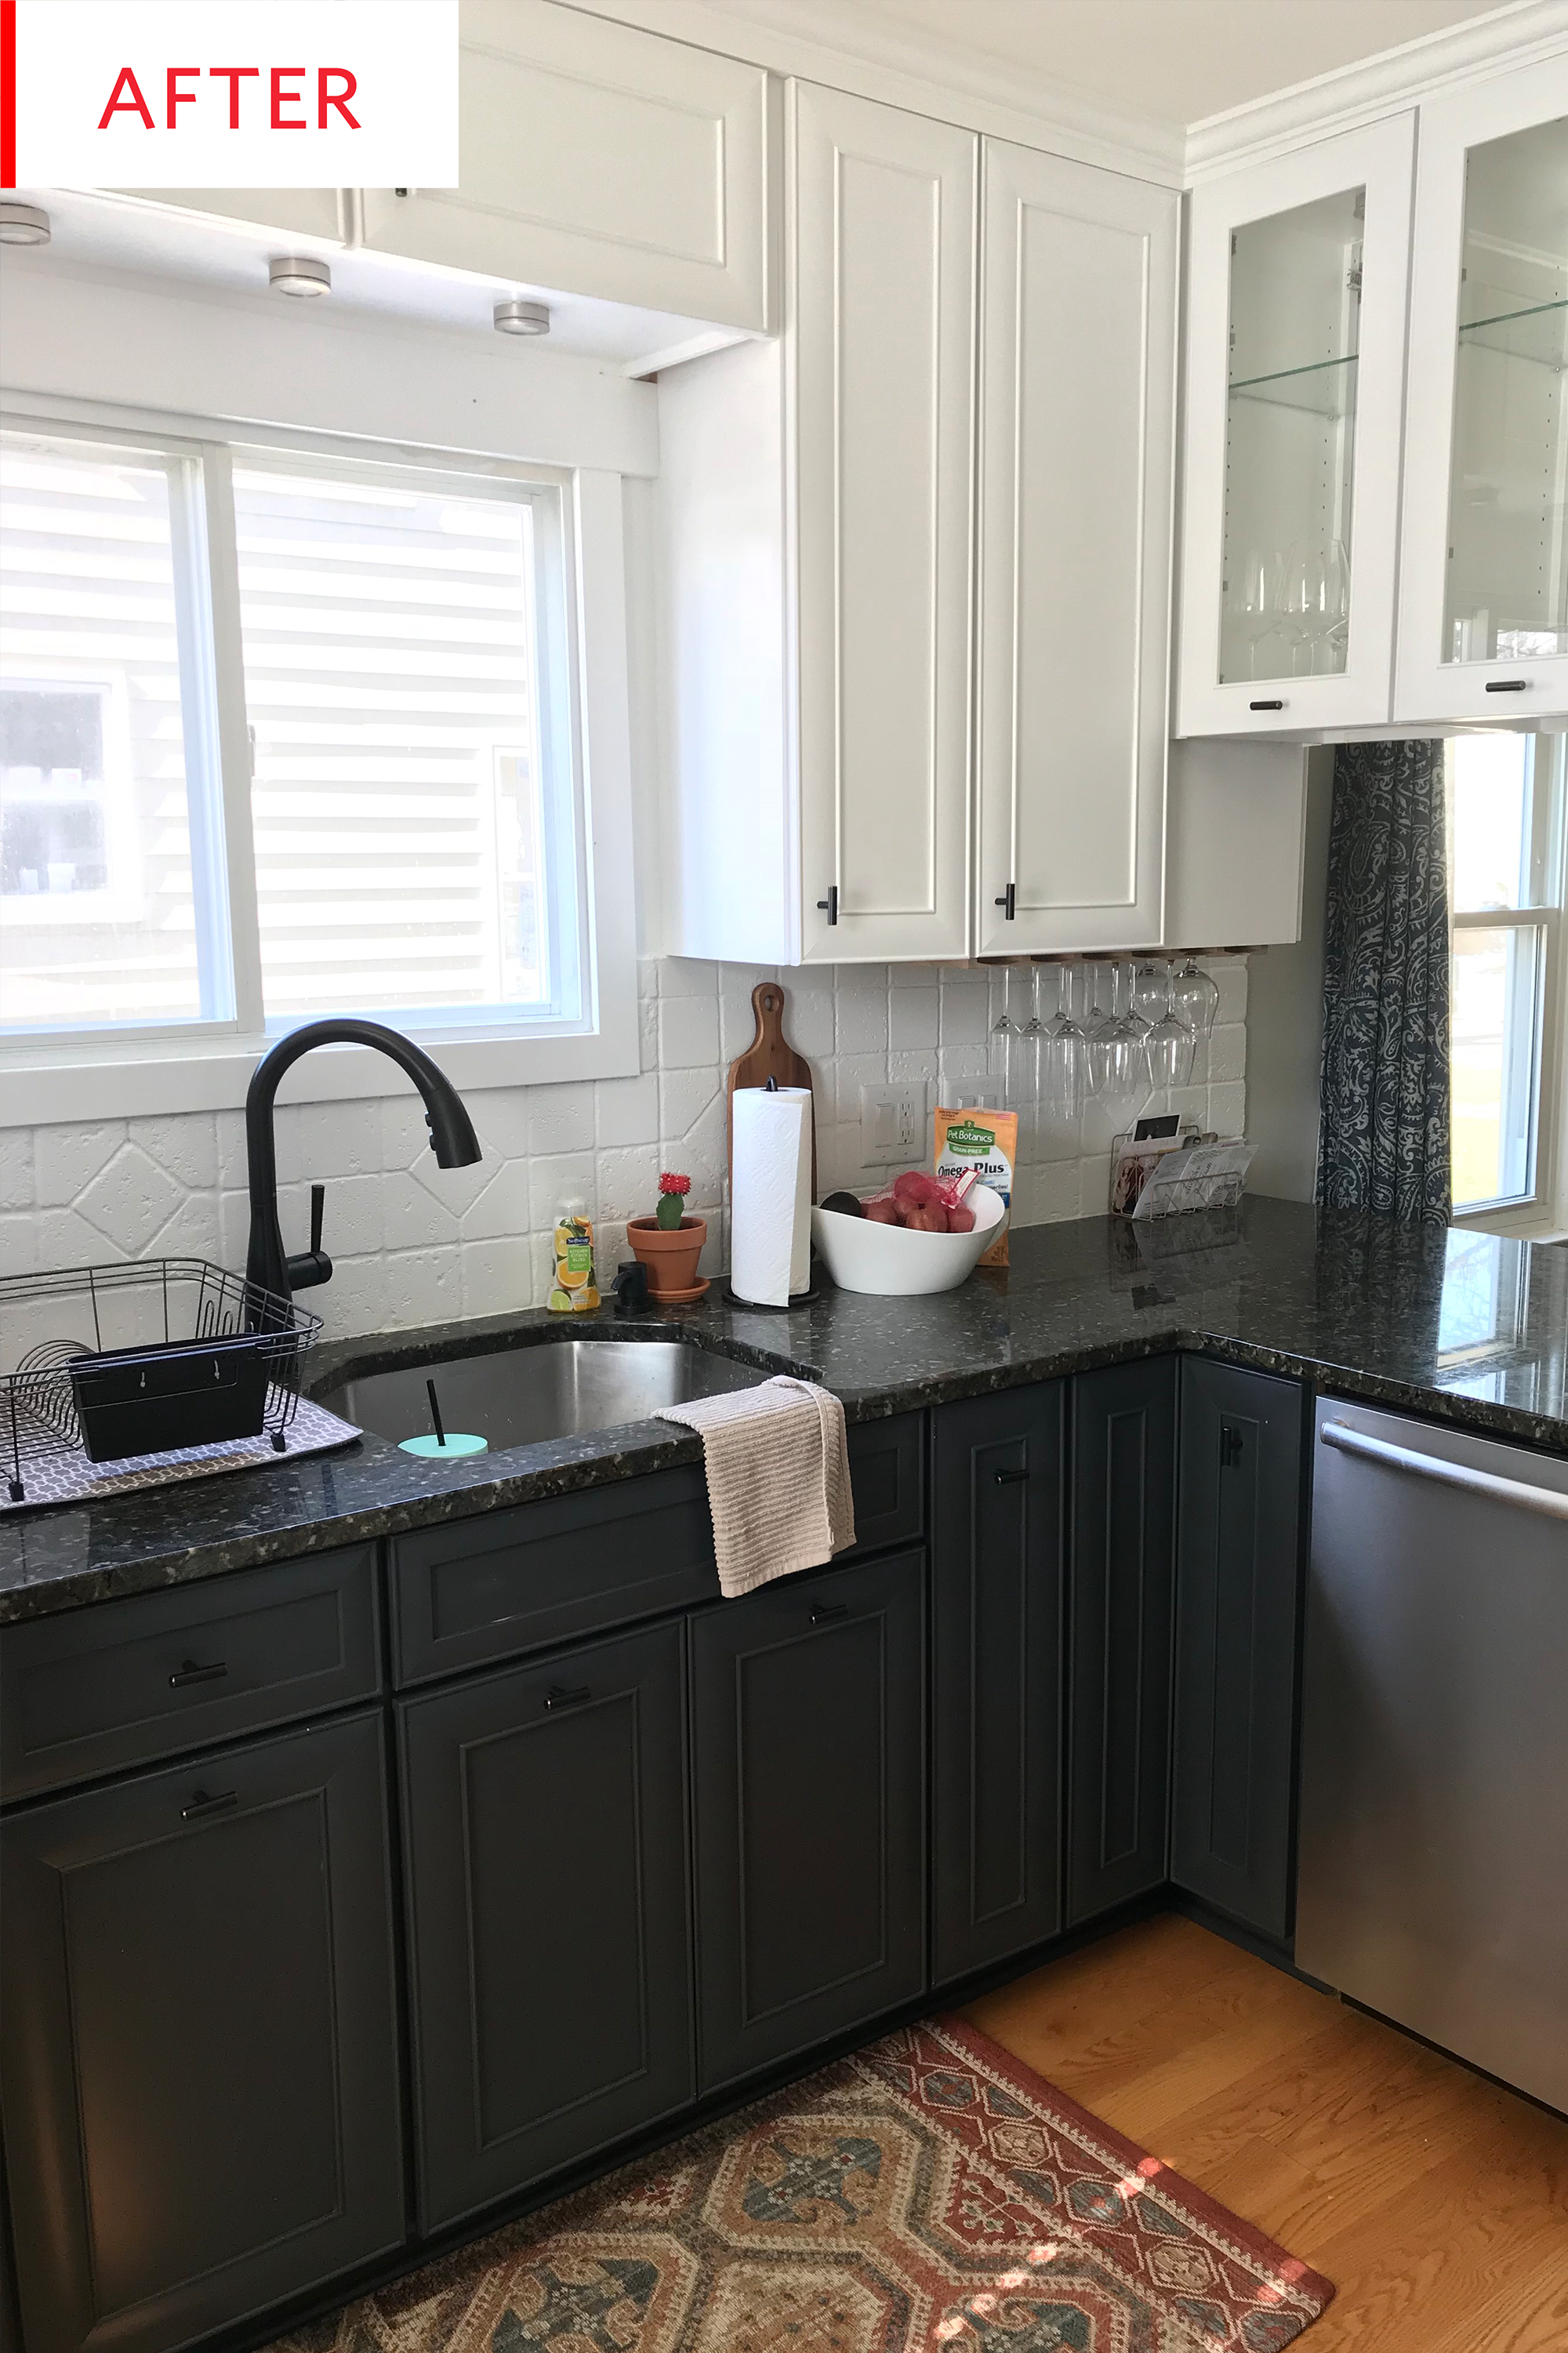 Before And After: A Three Week $500 Kitchen Facelift